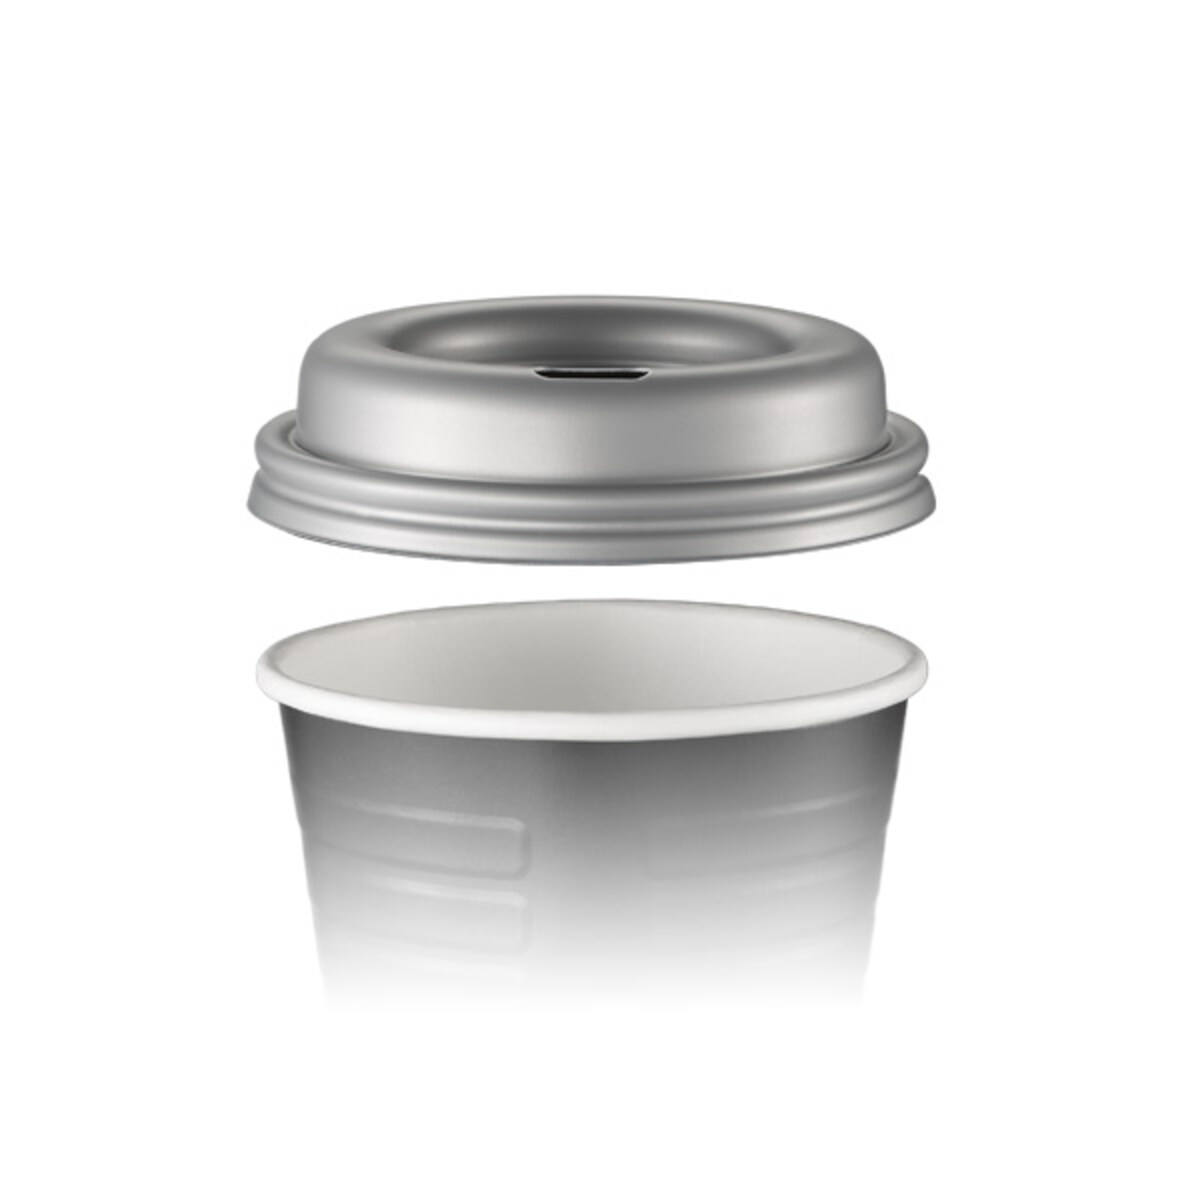 Nespresso Take away Lid - Medium